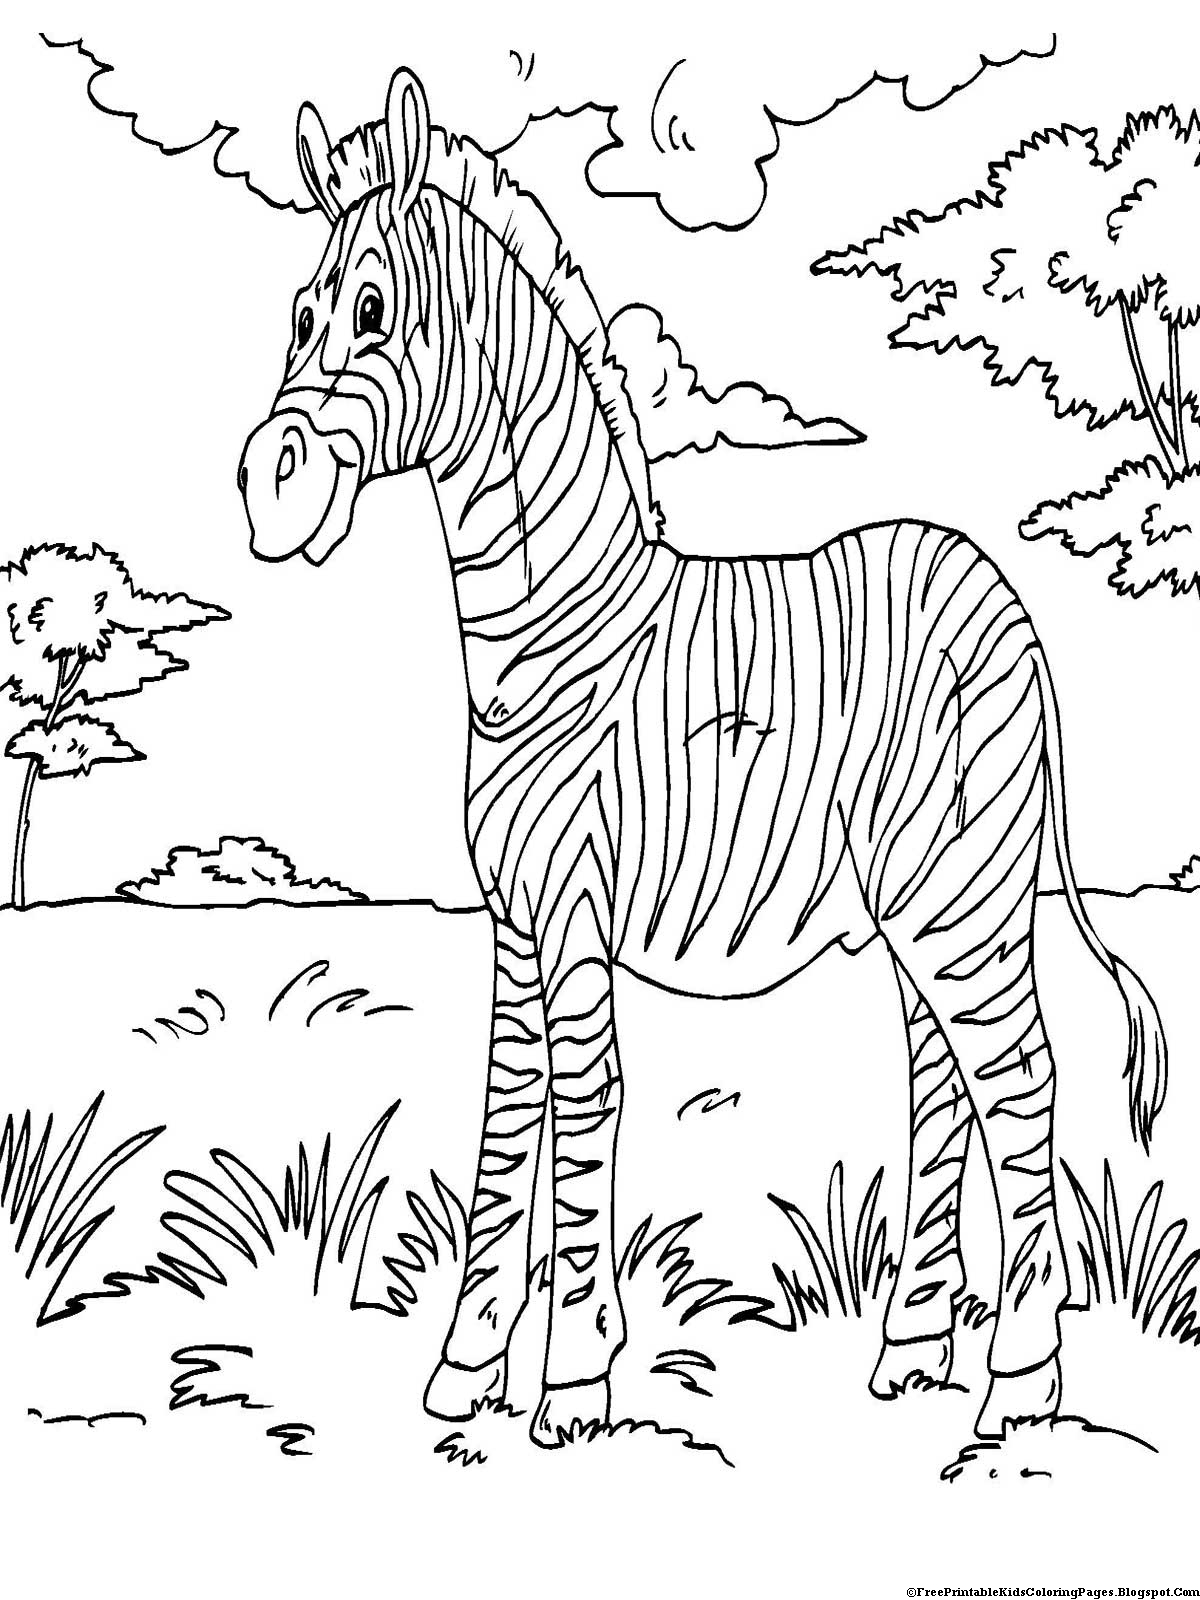 kids coloring pages printables - photo#13